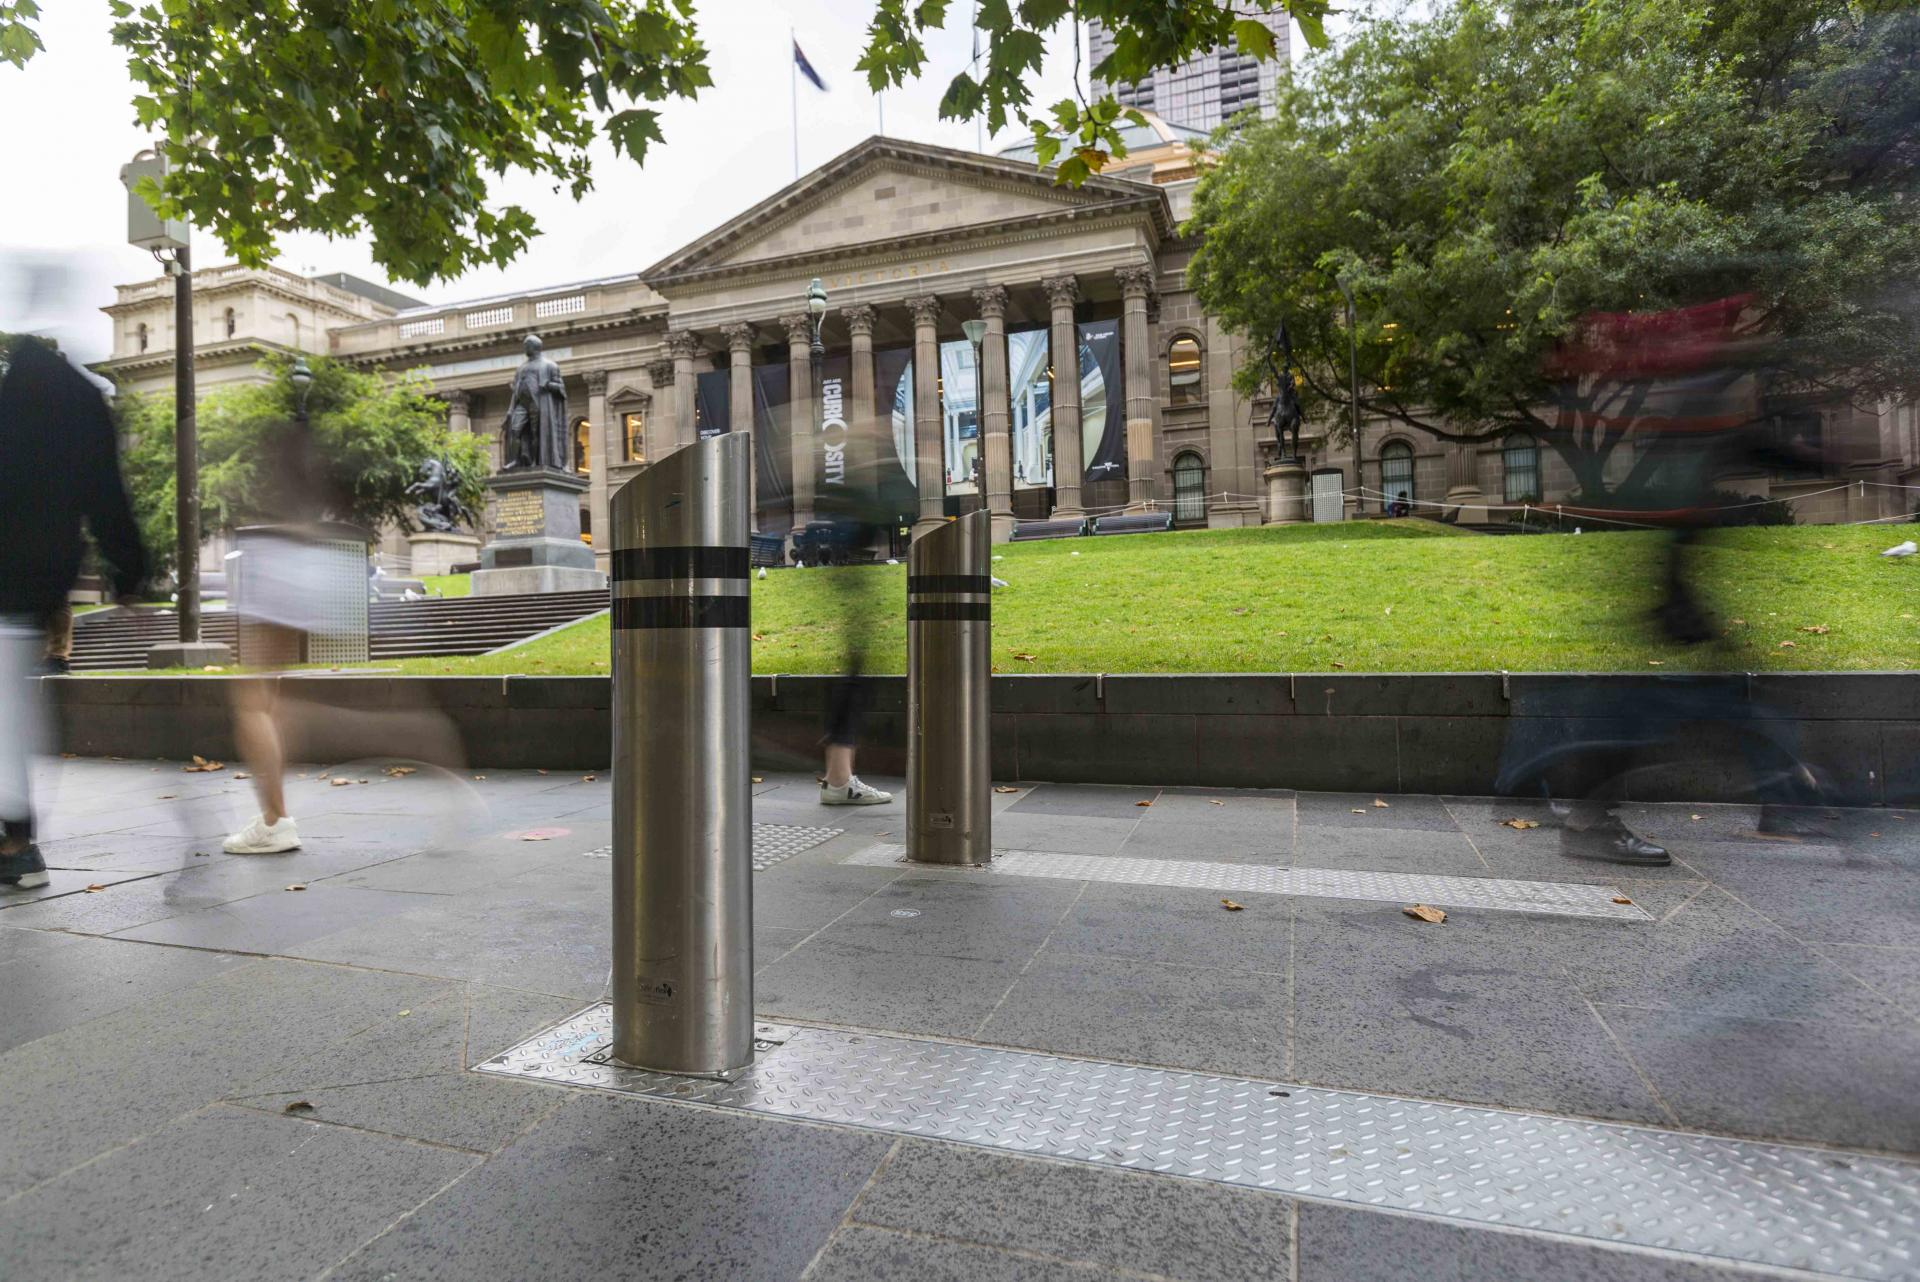 Security upgrades continue across Melbourne CBD